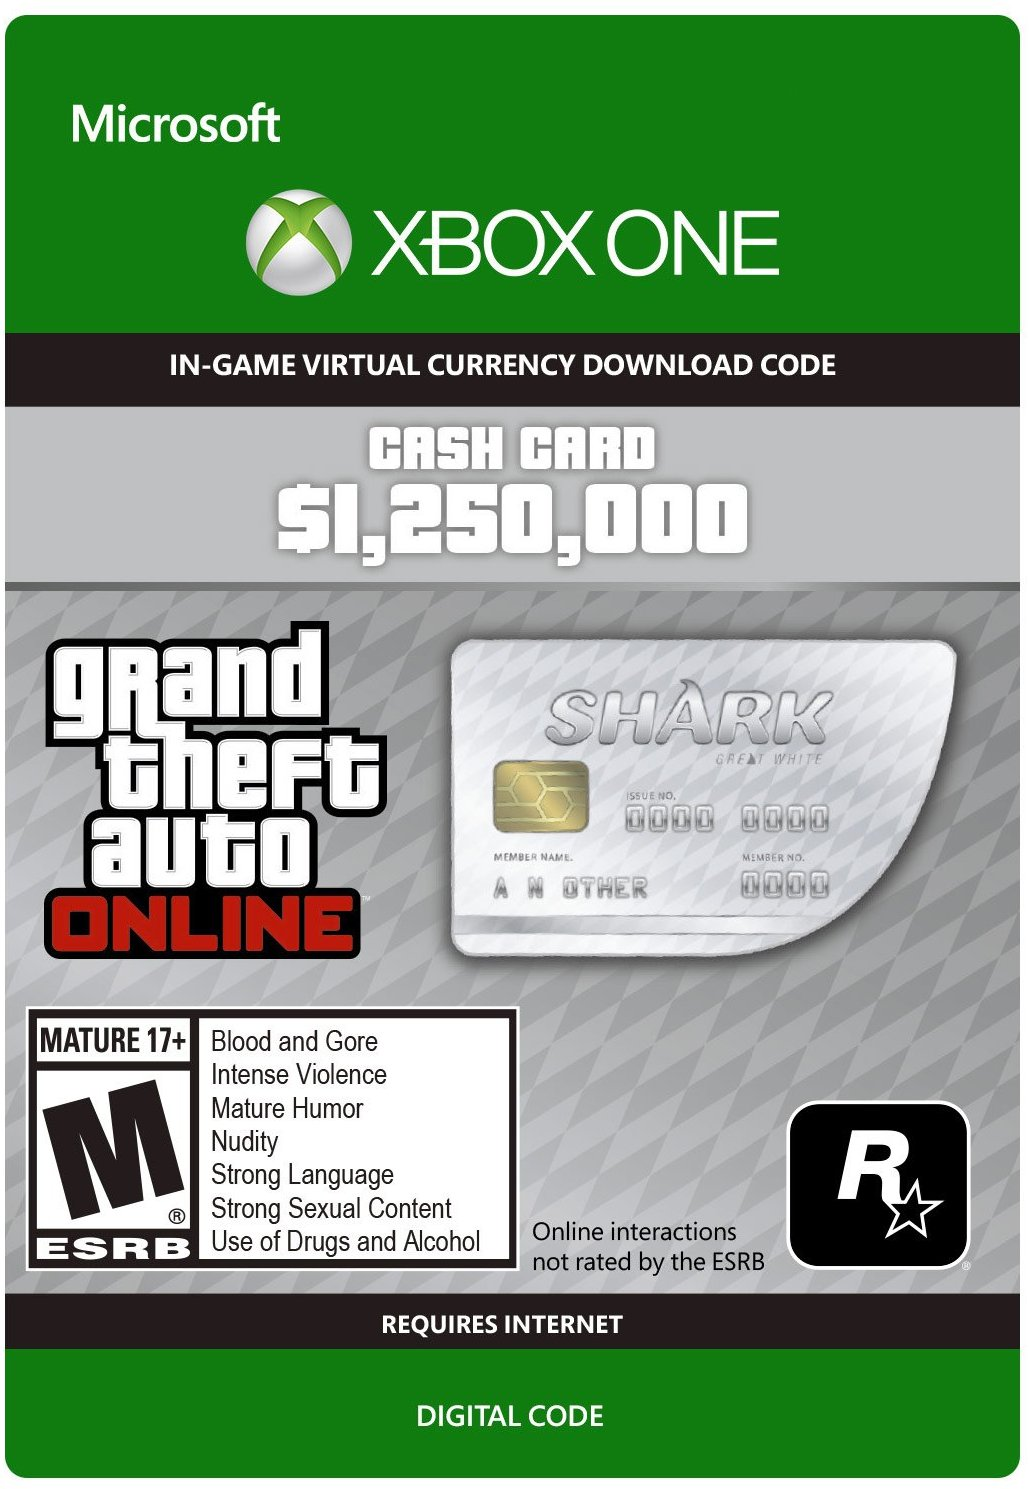 GTA 5 gift card photo - 1